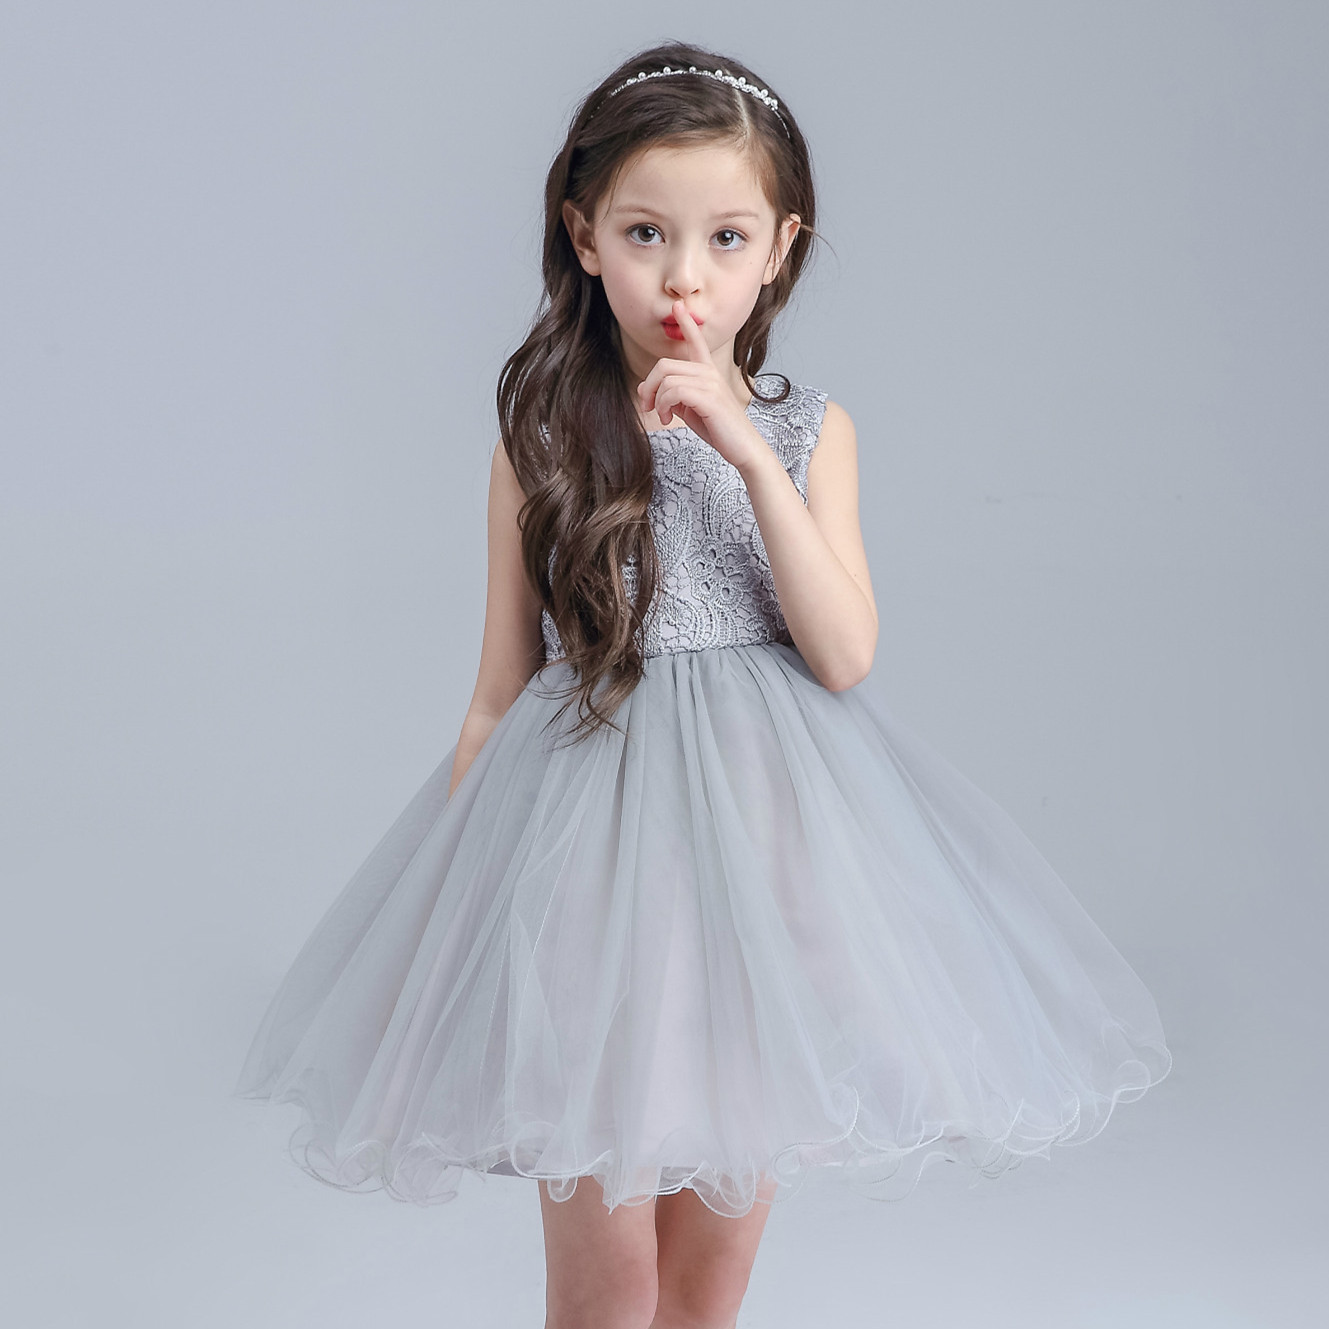 Outstanding Online Party Dresses For Kids Embellishment - All ...